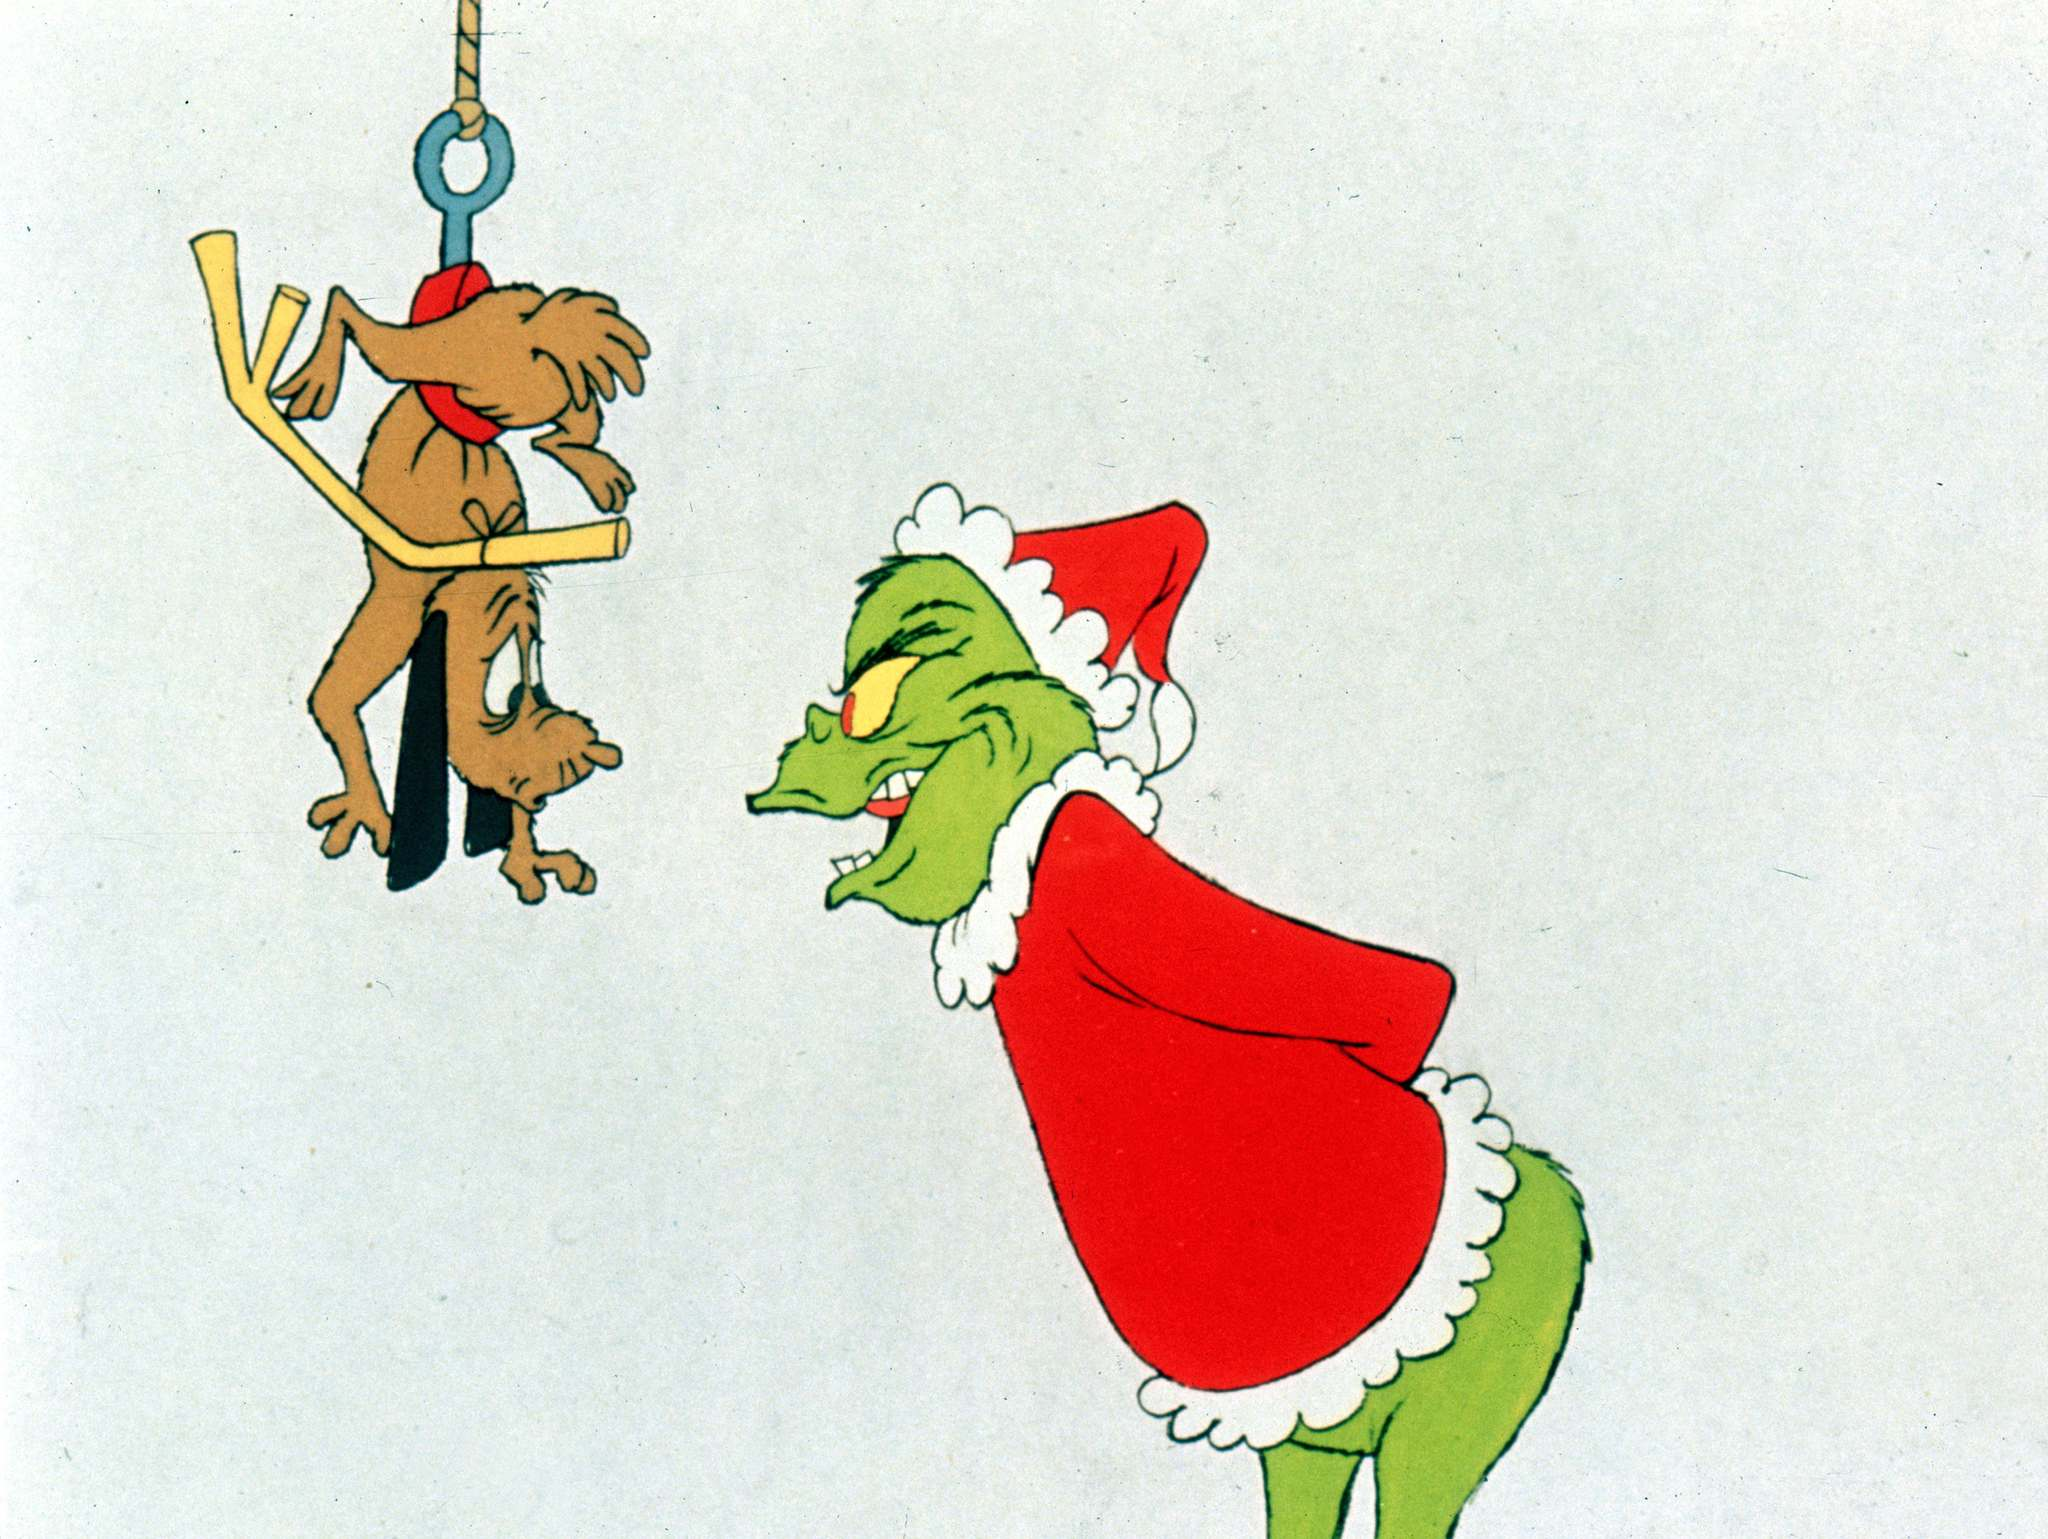 How The Grinch Stole Christmas Characters Animated.You Re An Old One Mr Grinch Winnipeg Free Press